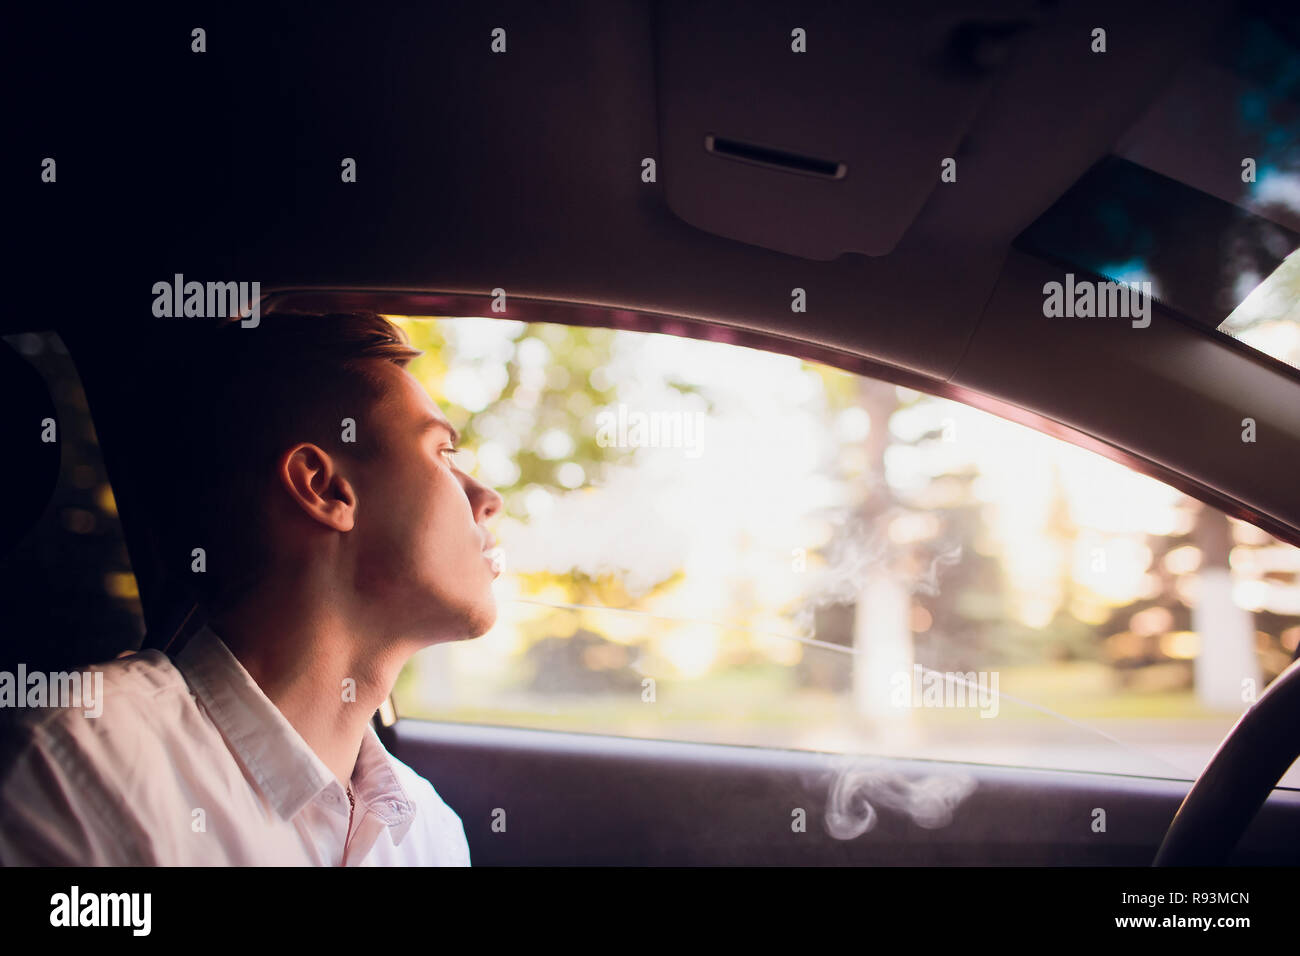 View from side young man smoking an e-cigarette as he drives his car on an urban street - Stock Image